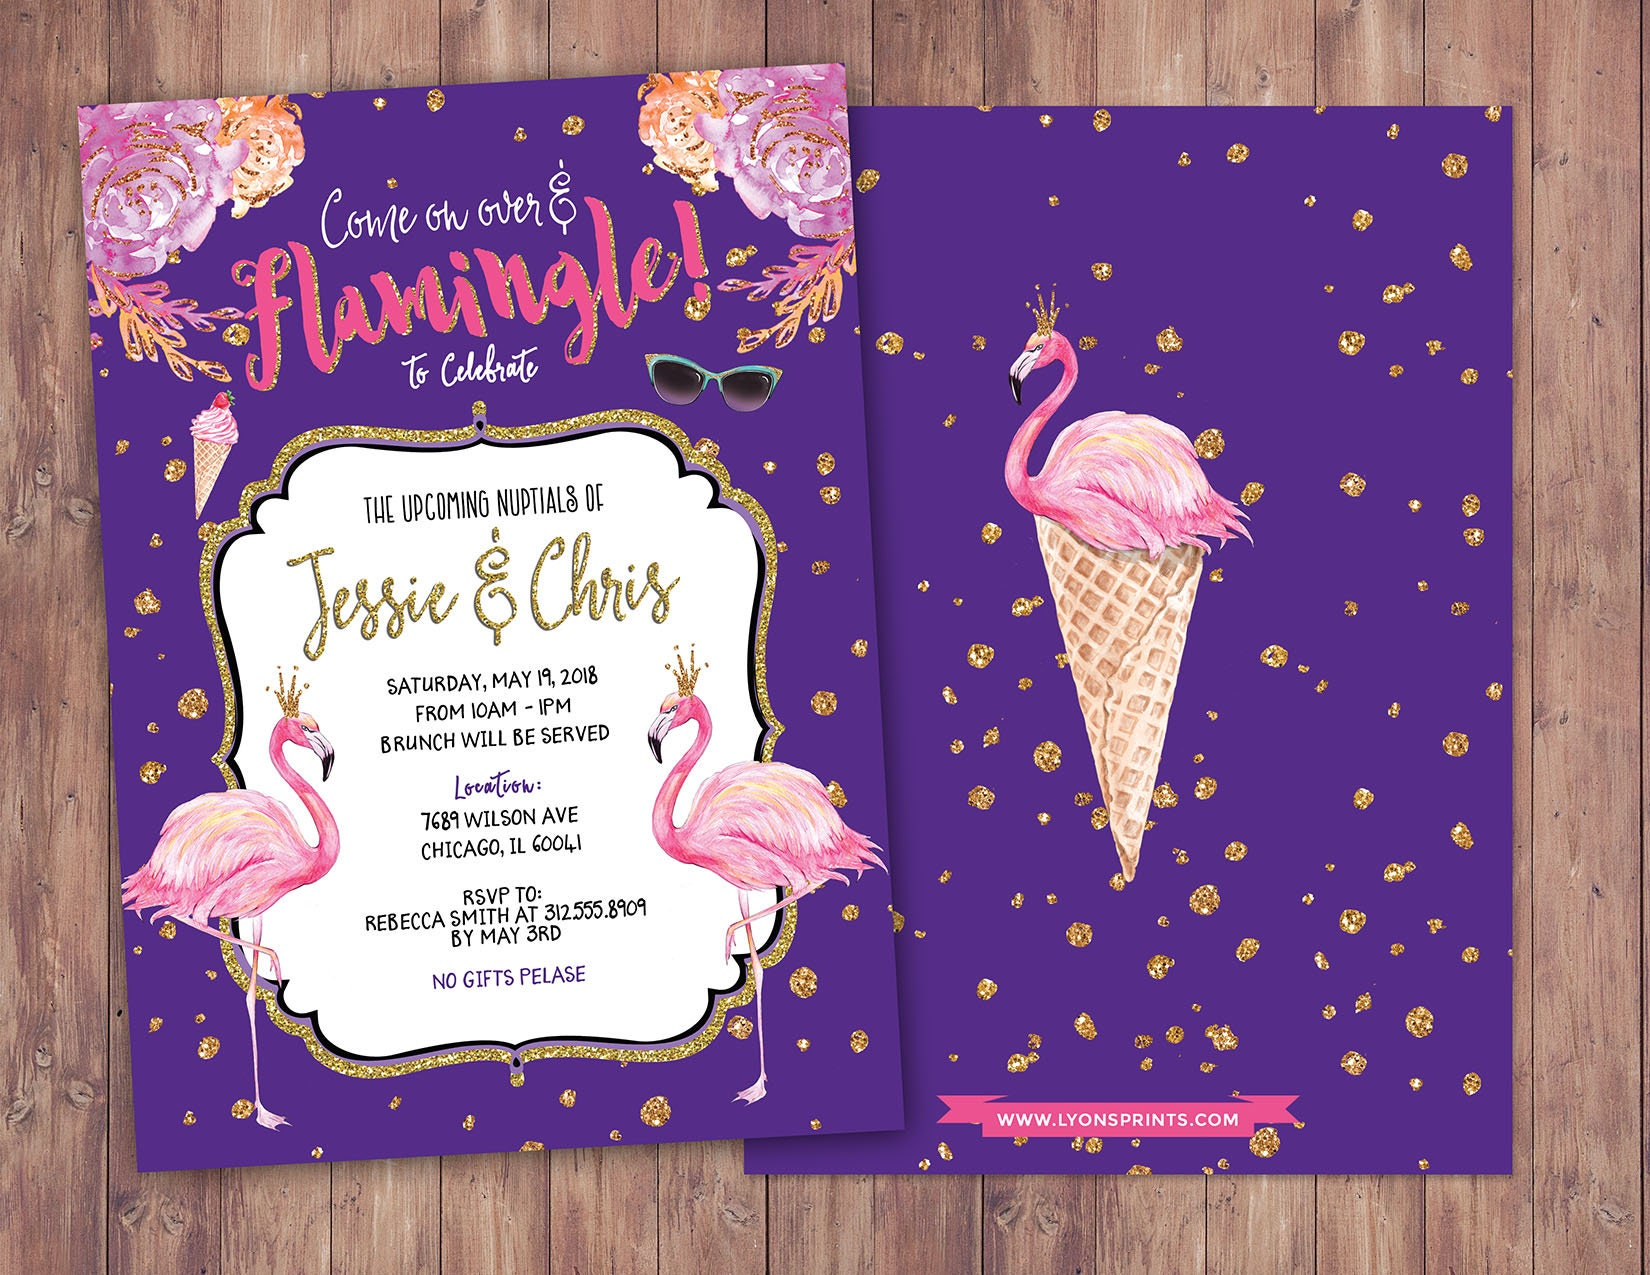 Bridal shower flamingo invitation flamingo party pool party bridal shower flamingo invitation flamingo party pool party invitation baby shower invitation pink gold invitation ice cream party filmwisefo